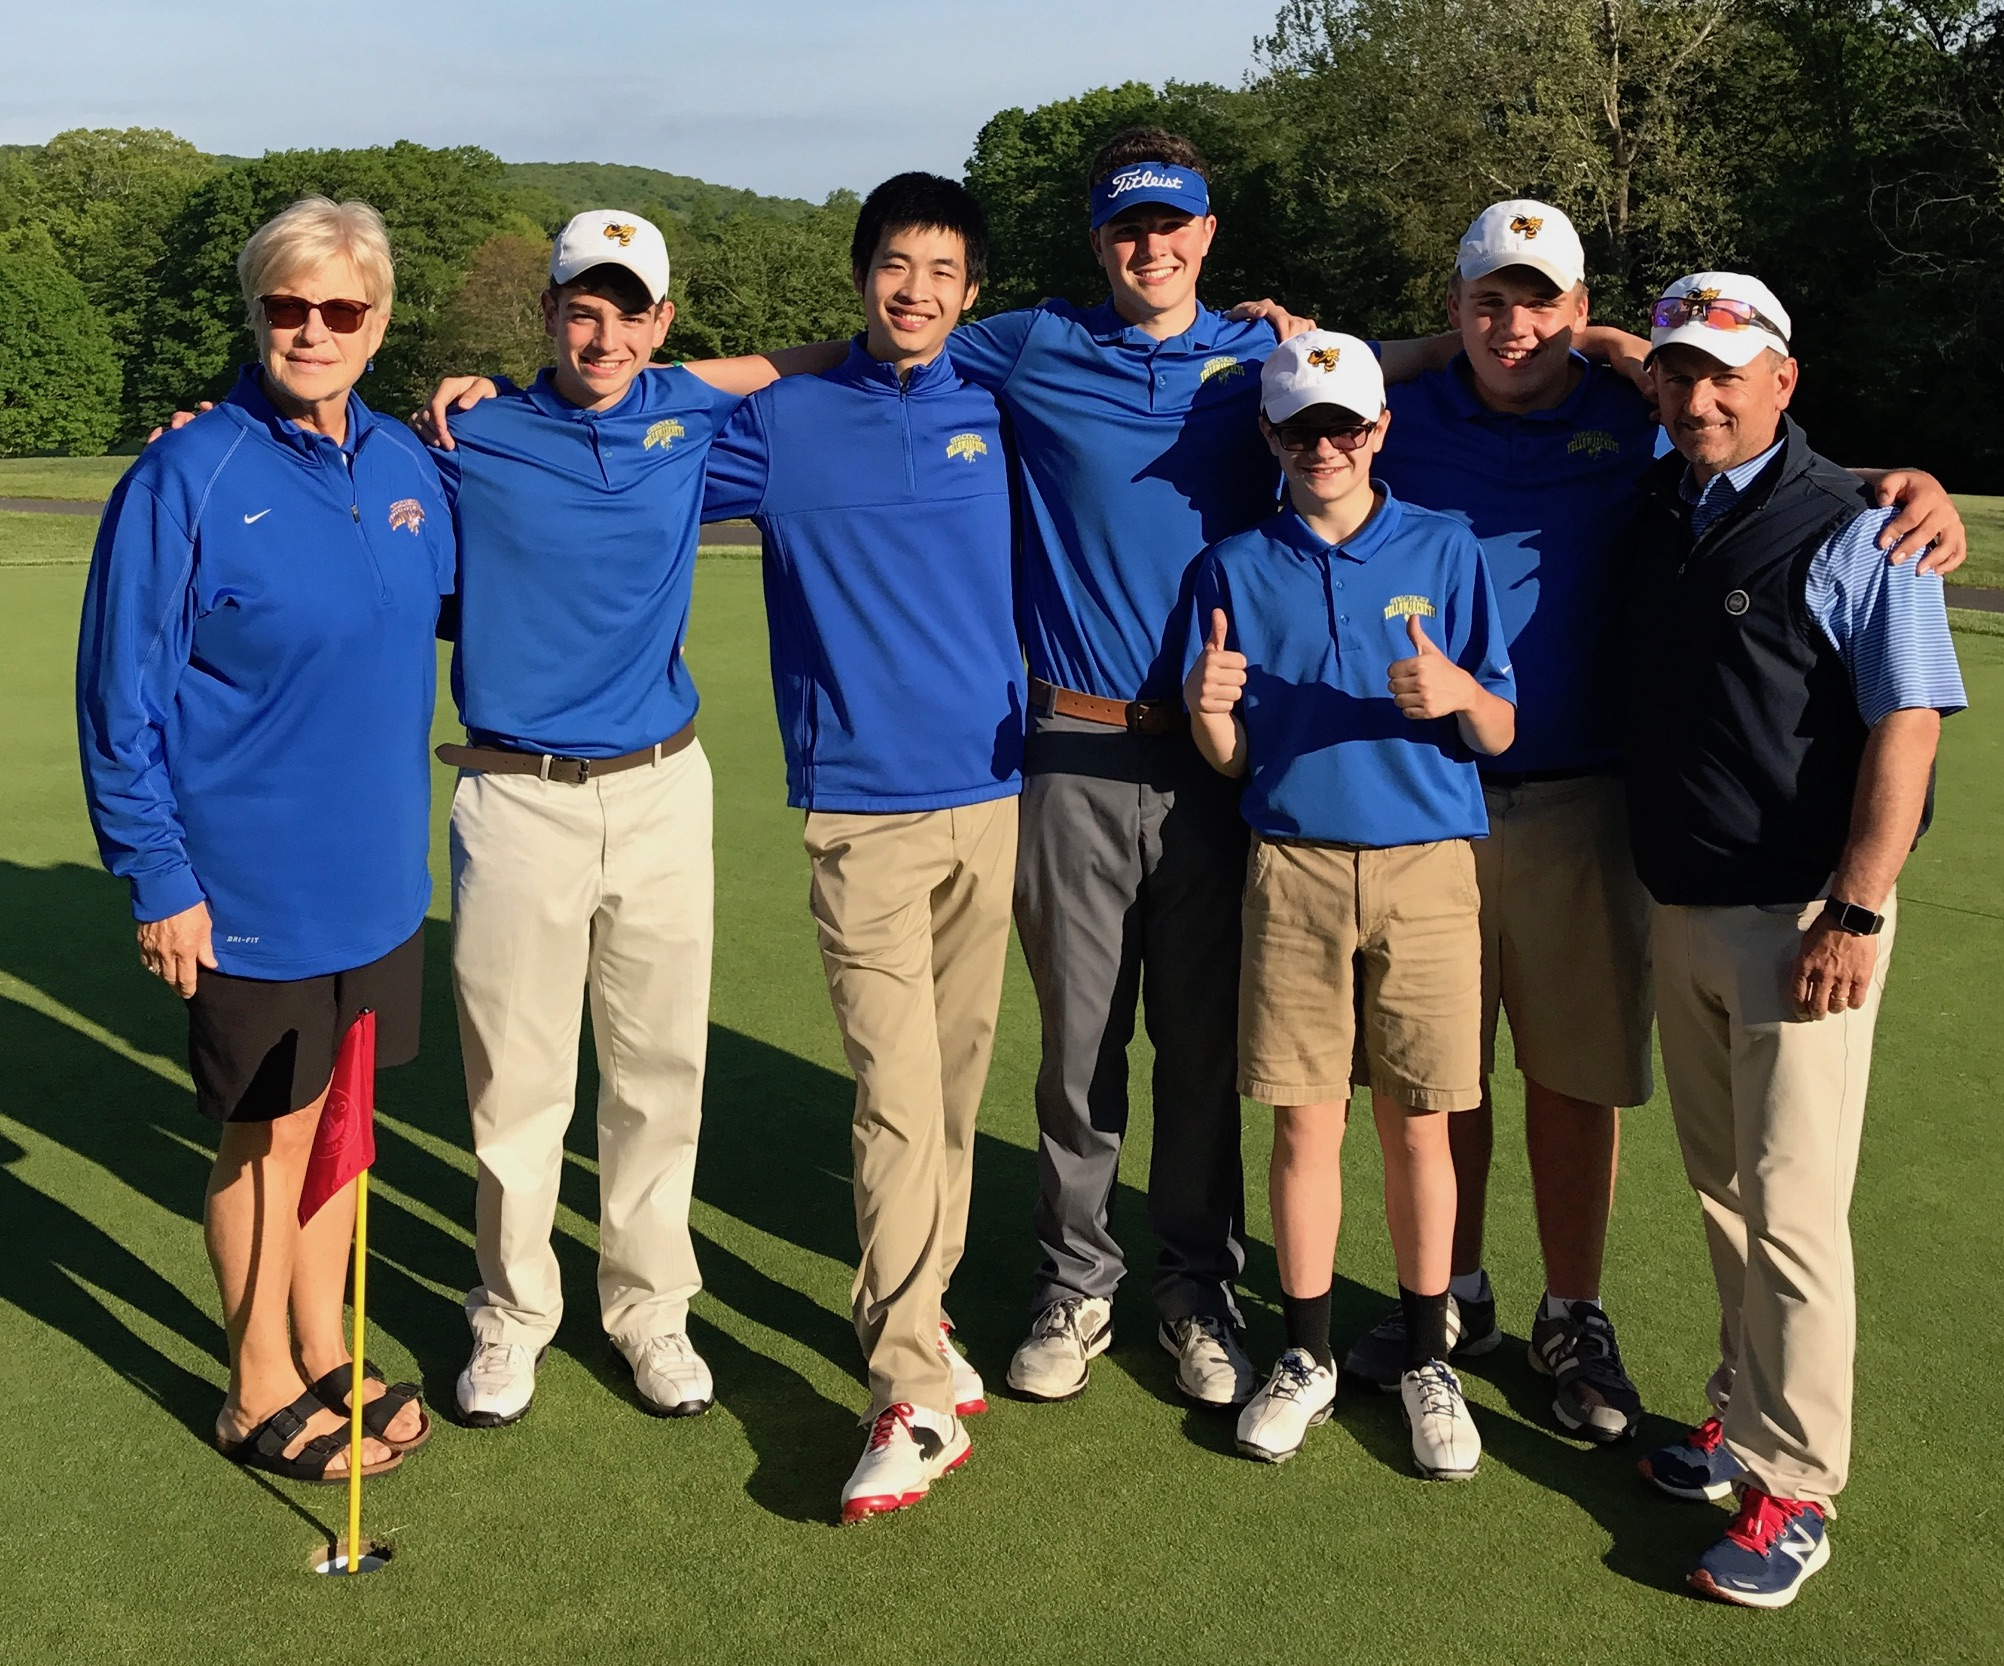 2017 Berkshire League Golf Champions